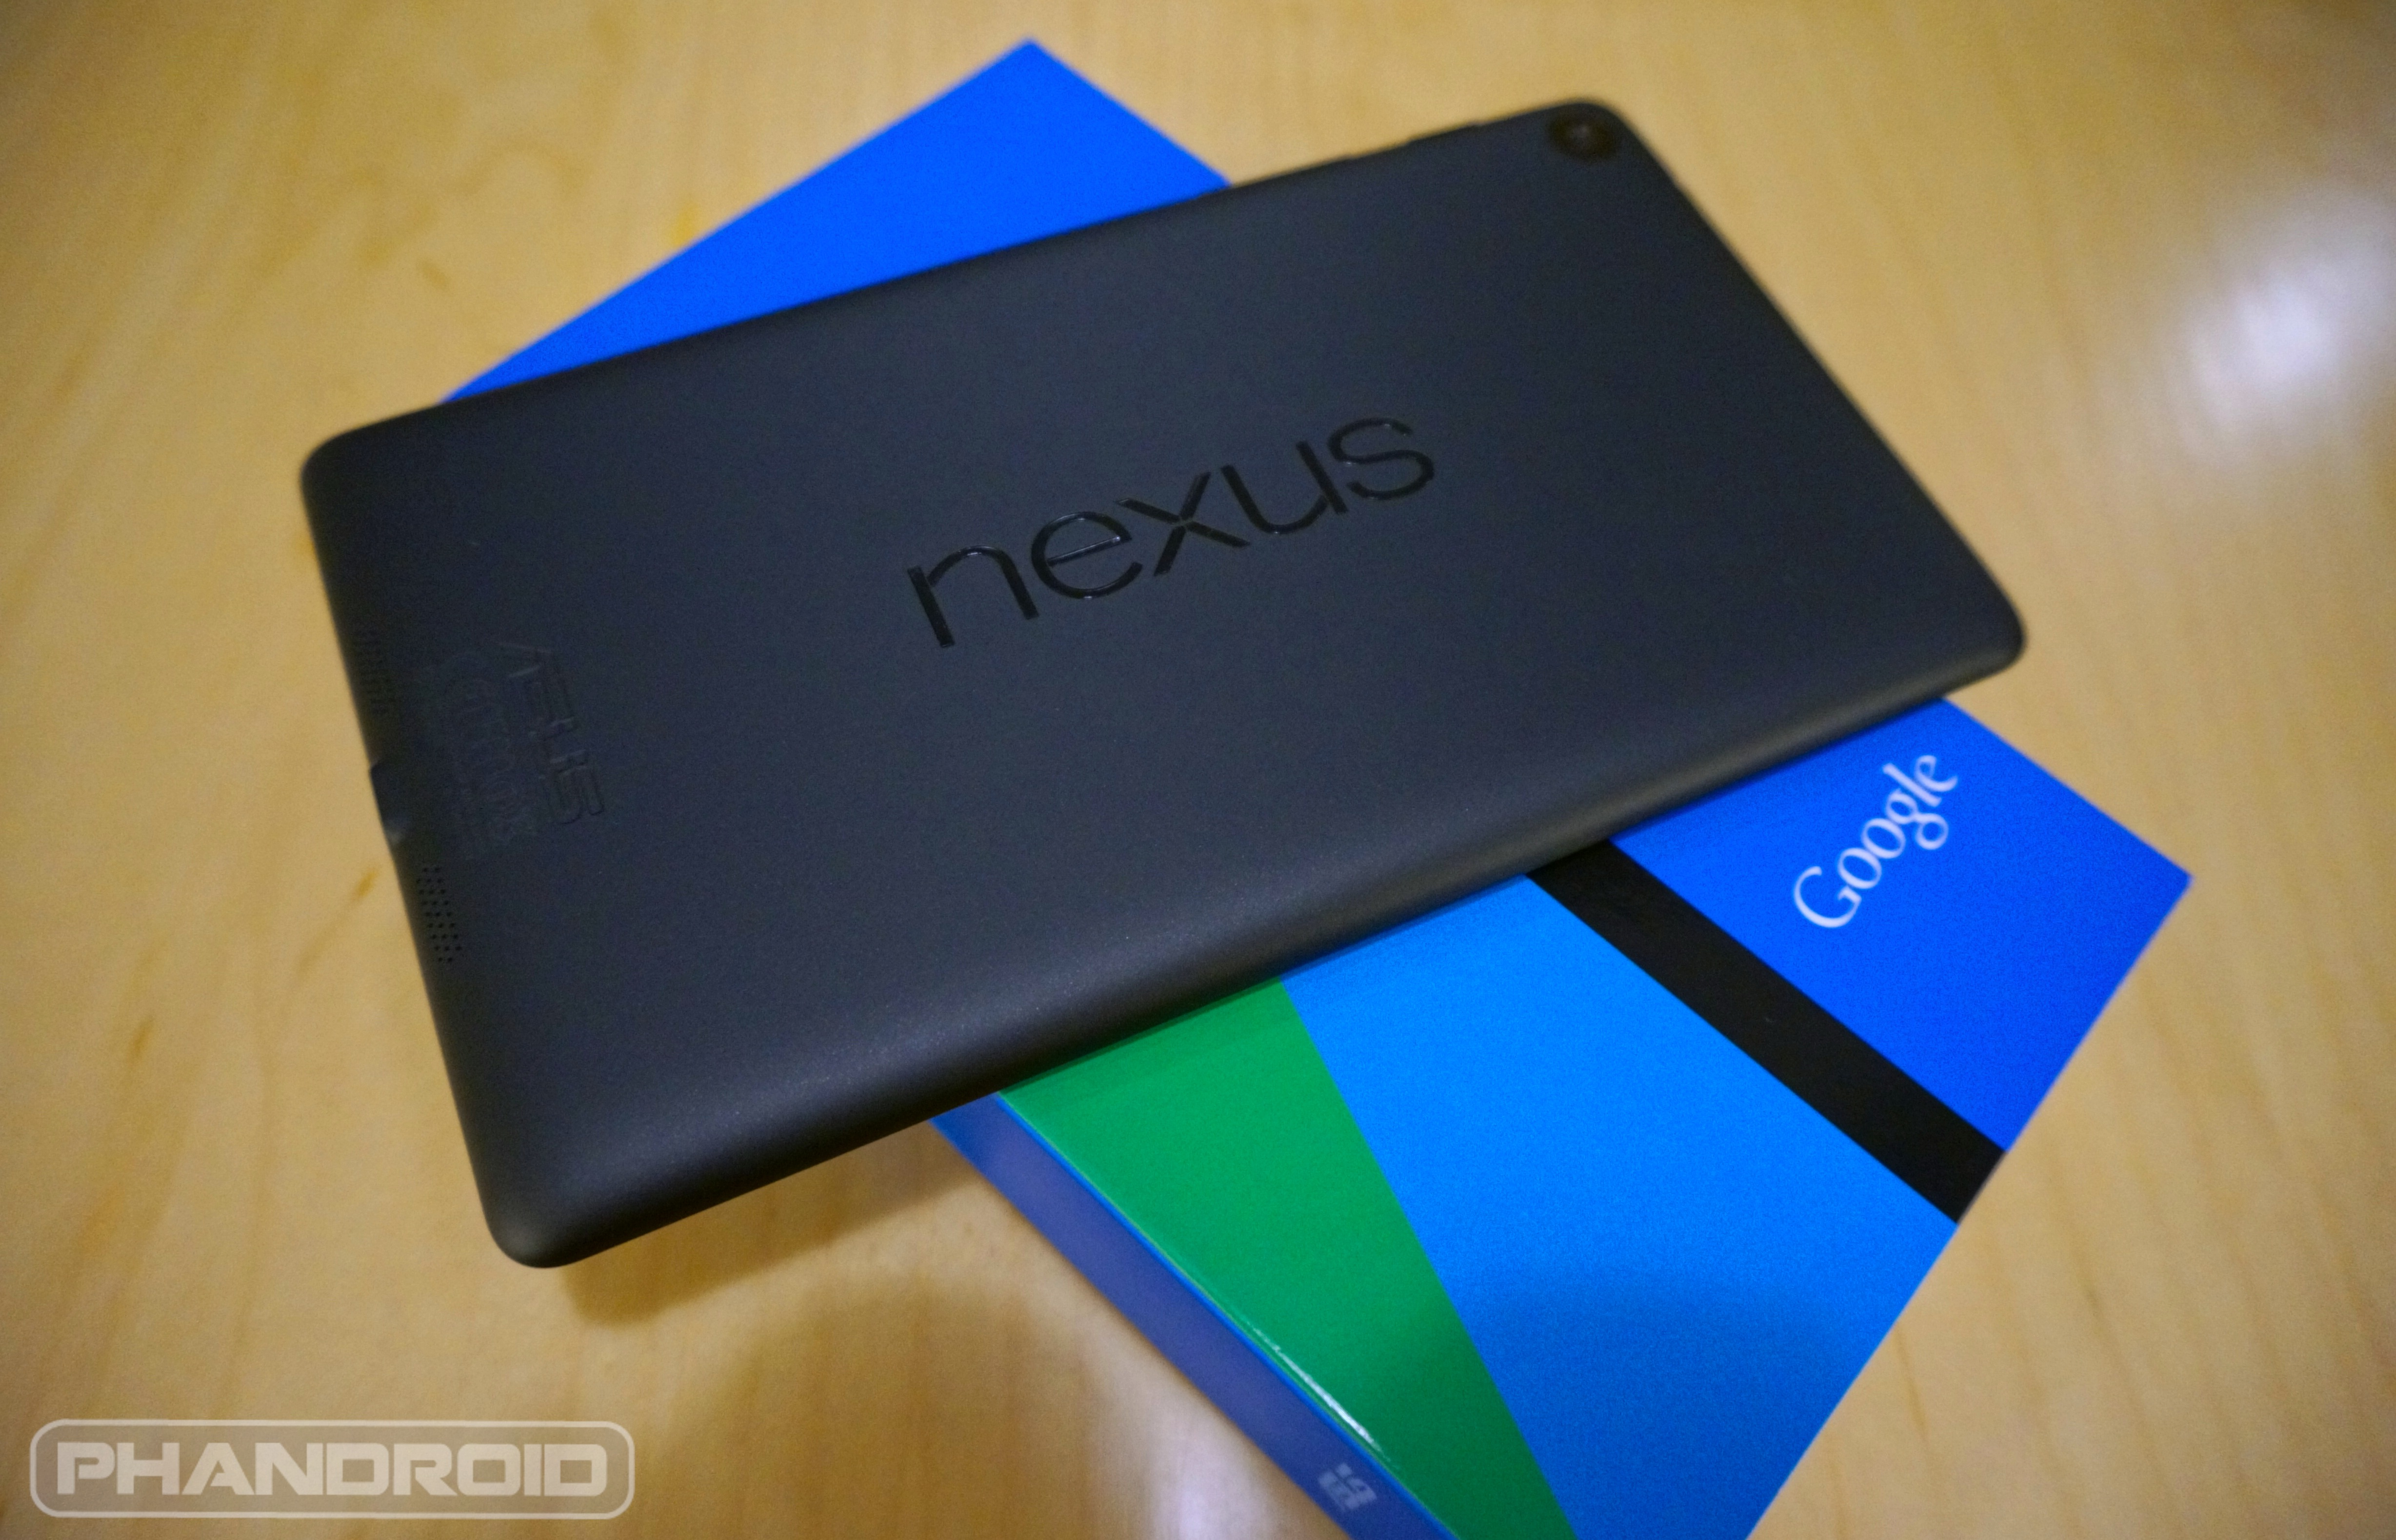 Download: Android 5 1 for Nexus 7 2013 LTE arrives, get